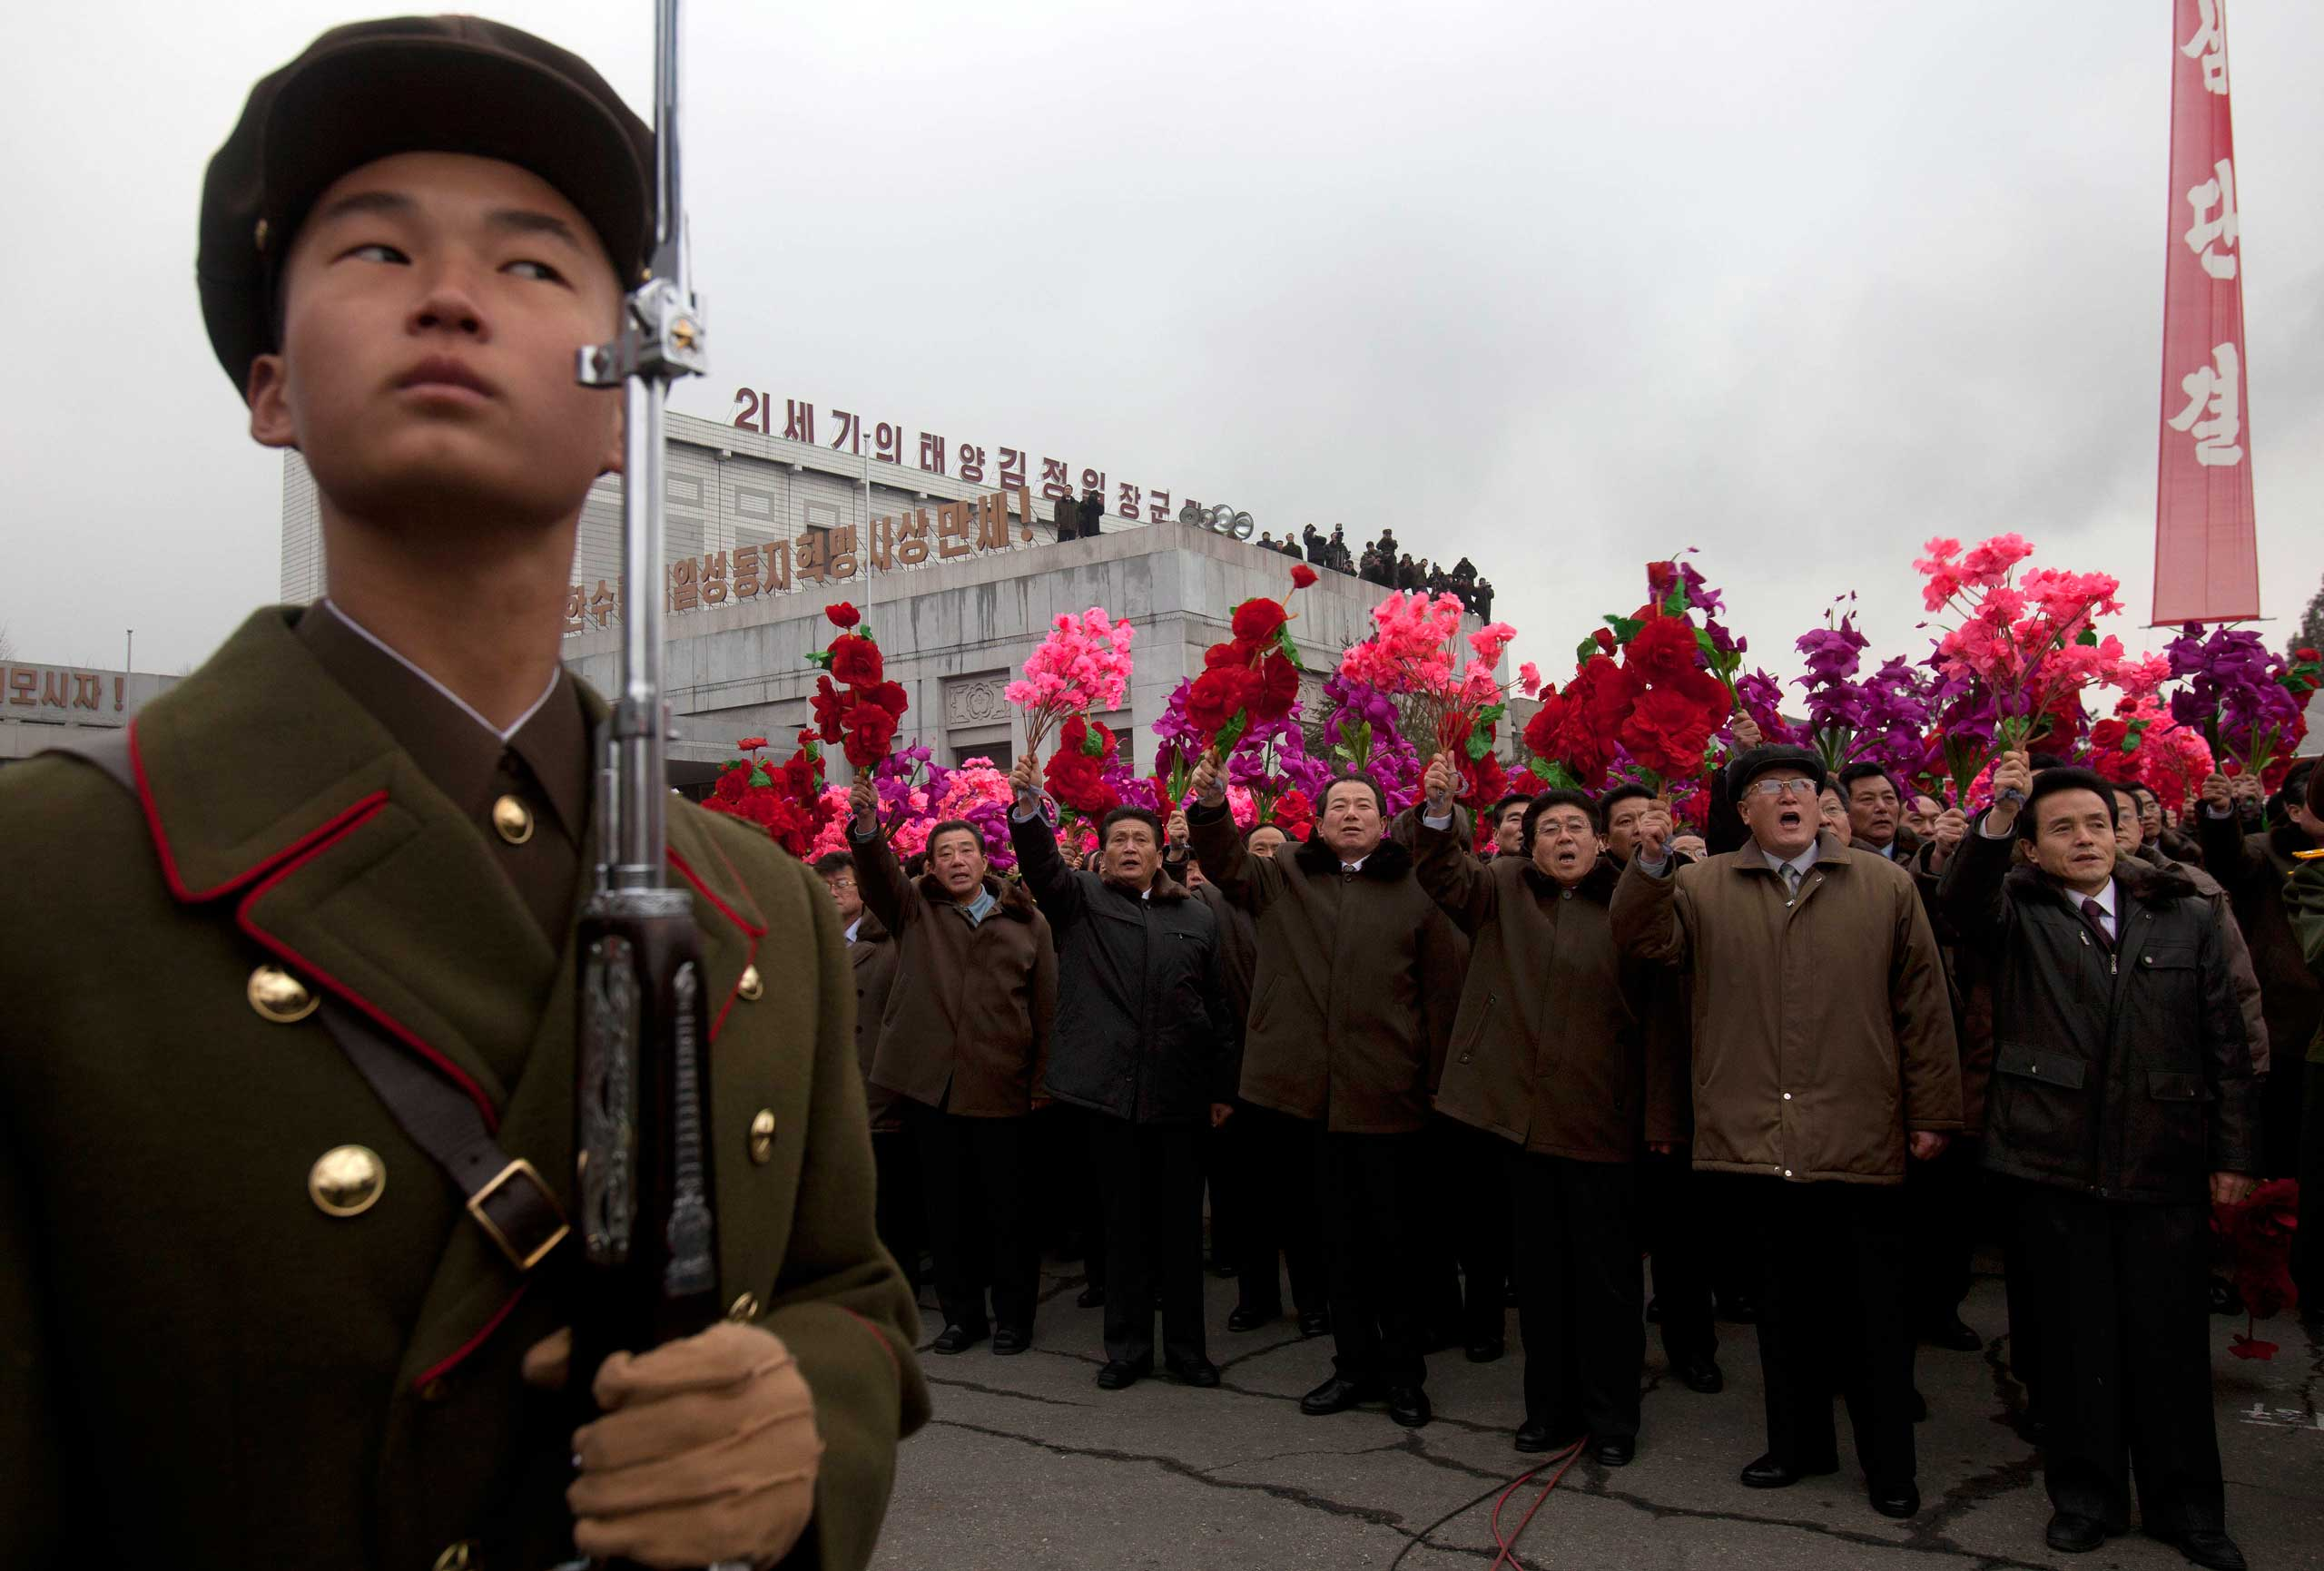 Feb. 14, 2012. A North Korean stands at attention as others cheer during the unveiling of a new bronze statue depicting the late leader Kim Jong-Il and his father Kim Il-Sung at Mansudae Art Studio in Pyongyang.